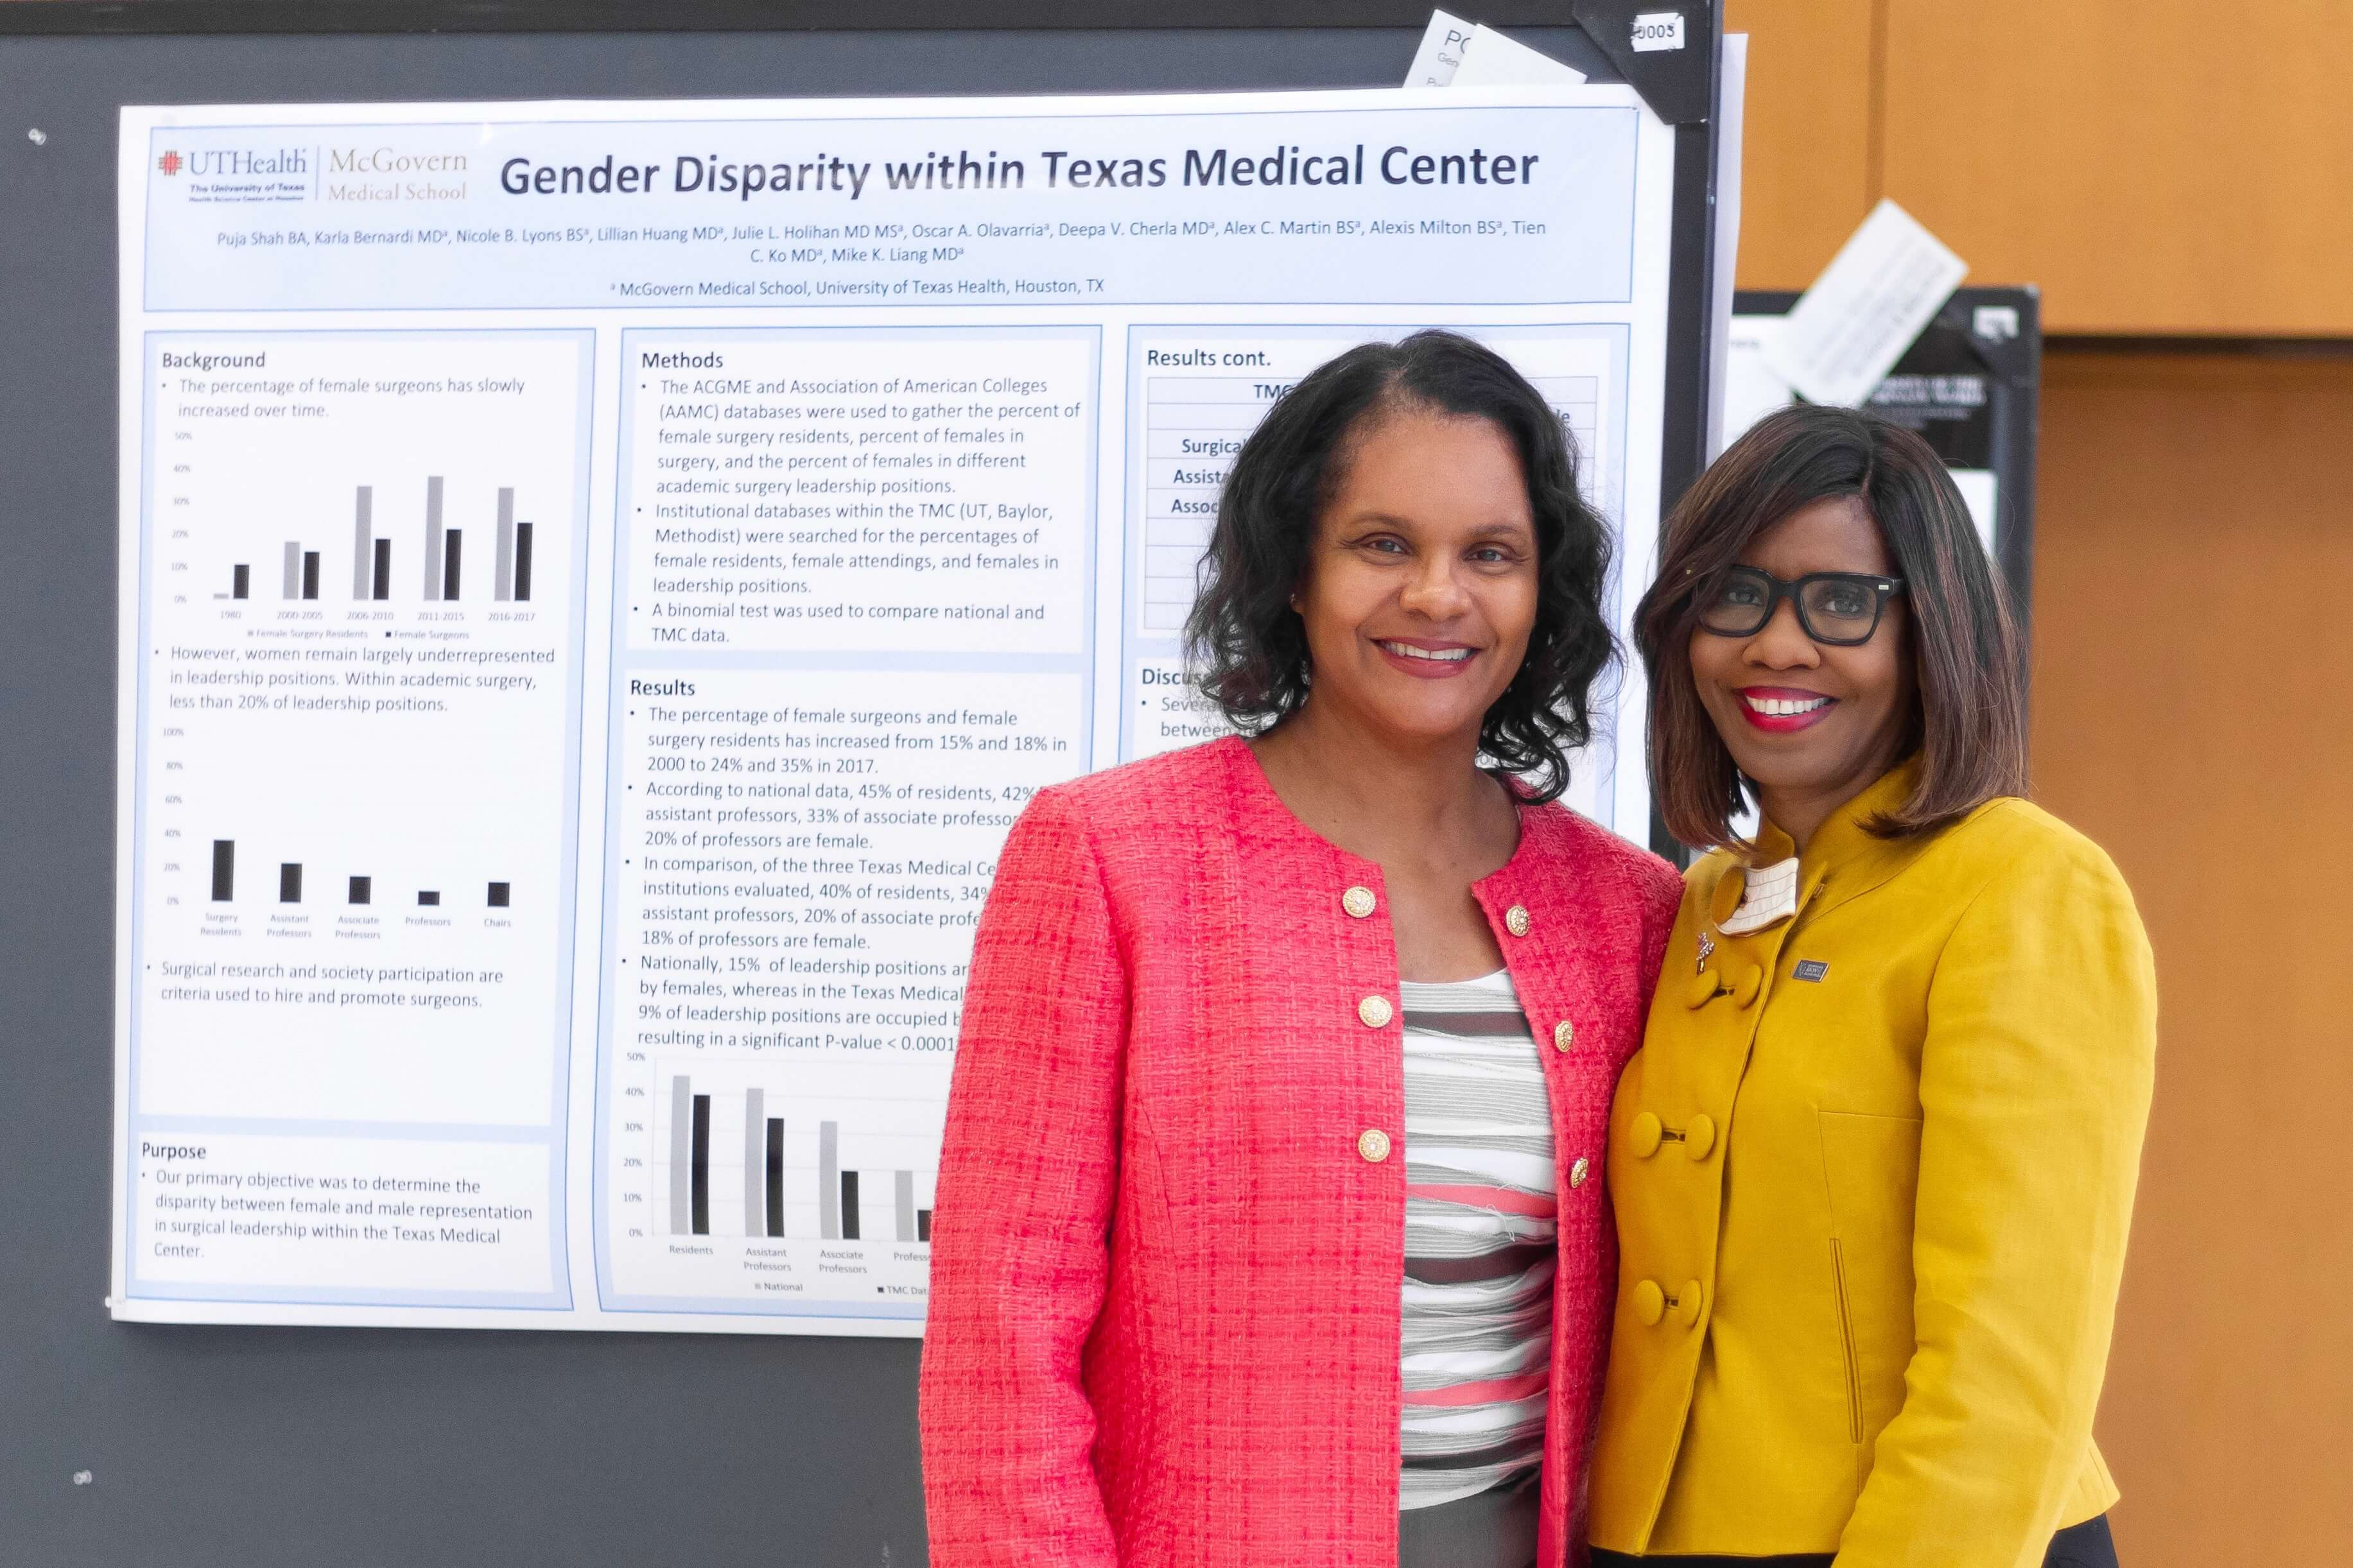 Toi Blakley Harris, M.D., Baylor College of Medicine's Associate Provost of Institutional Diversity and Inclusion & Student Services, left, with Patrice Harris, M.D.—who became the 174th president of the American Medical Association in June 2019—at Baylor College of Medicine on June 18, 2019. (Photo courtesy of Baylor College of Medicine)